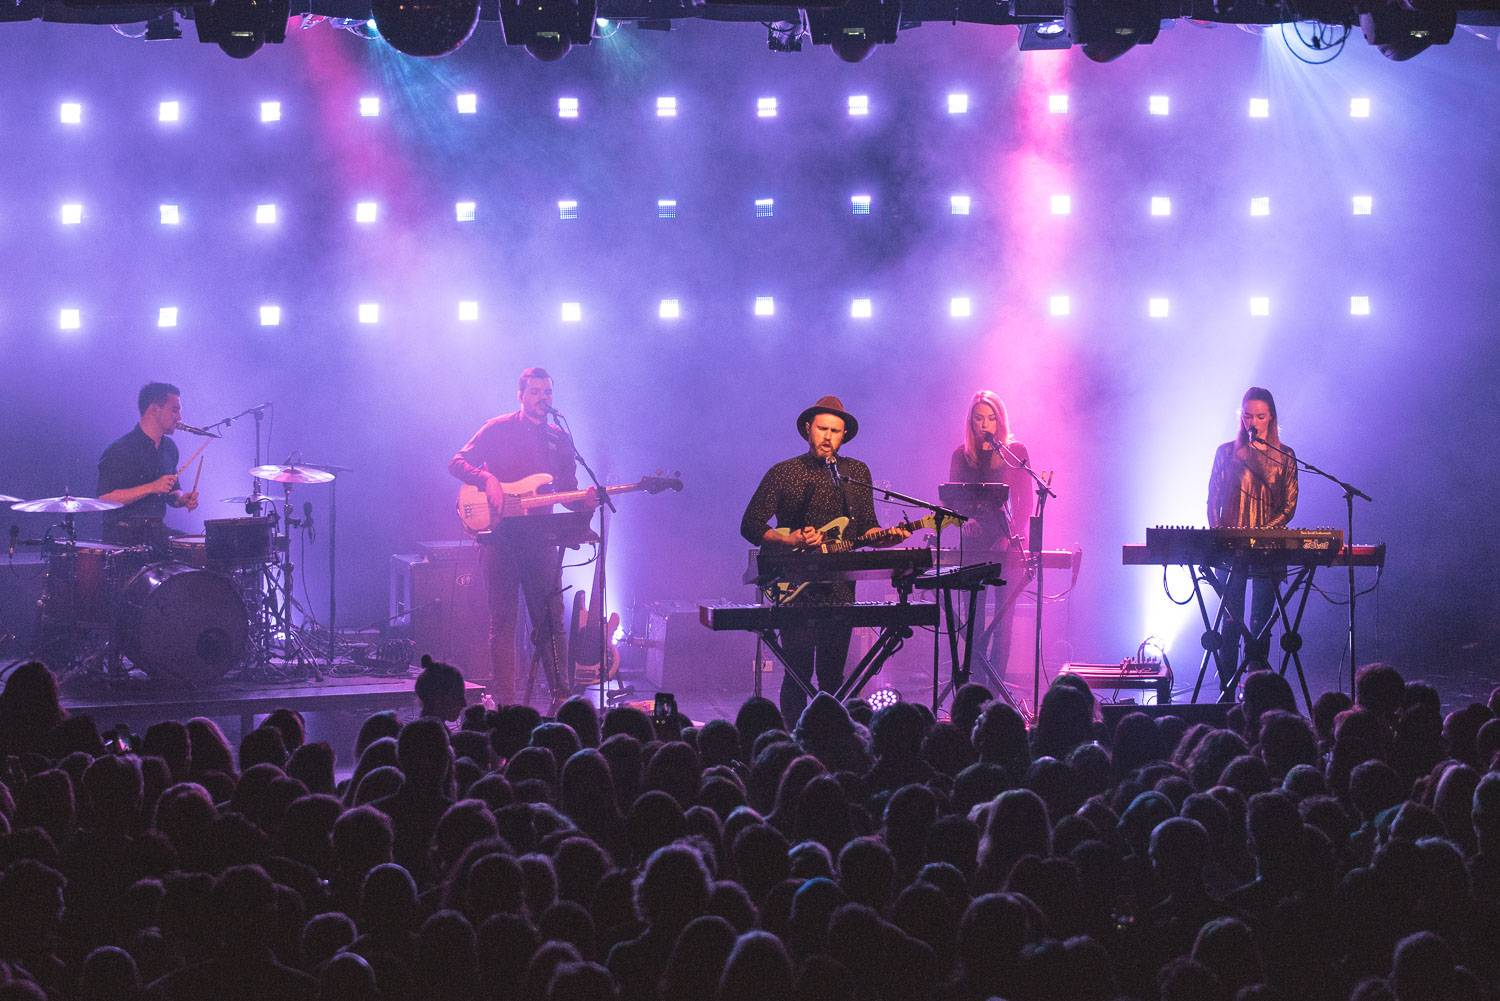 James Vincent McMorrow at the Commodore Ballroom, Vancouver, Nov.24 2016. Pavel Boiko photo.